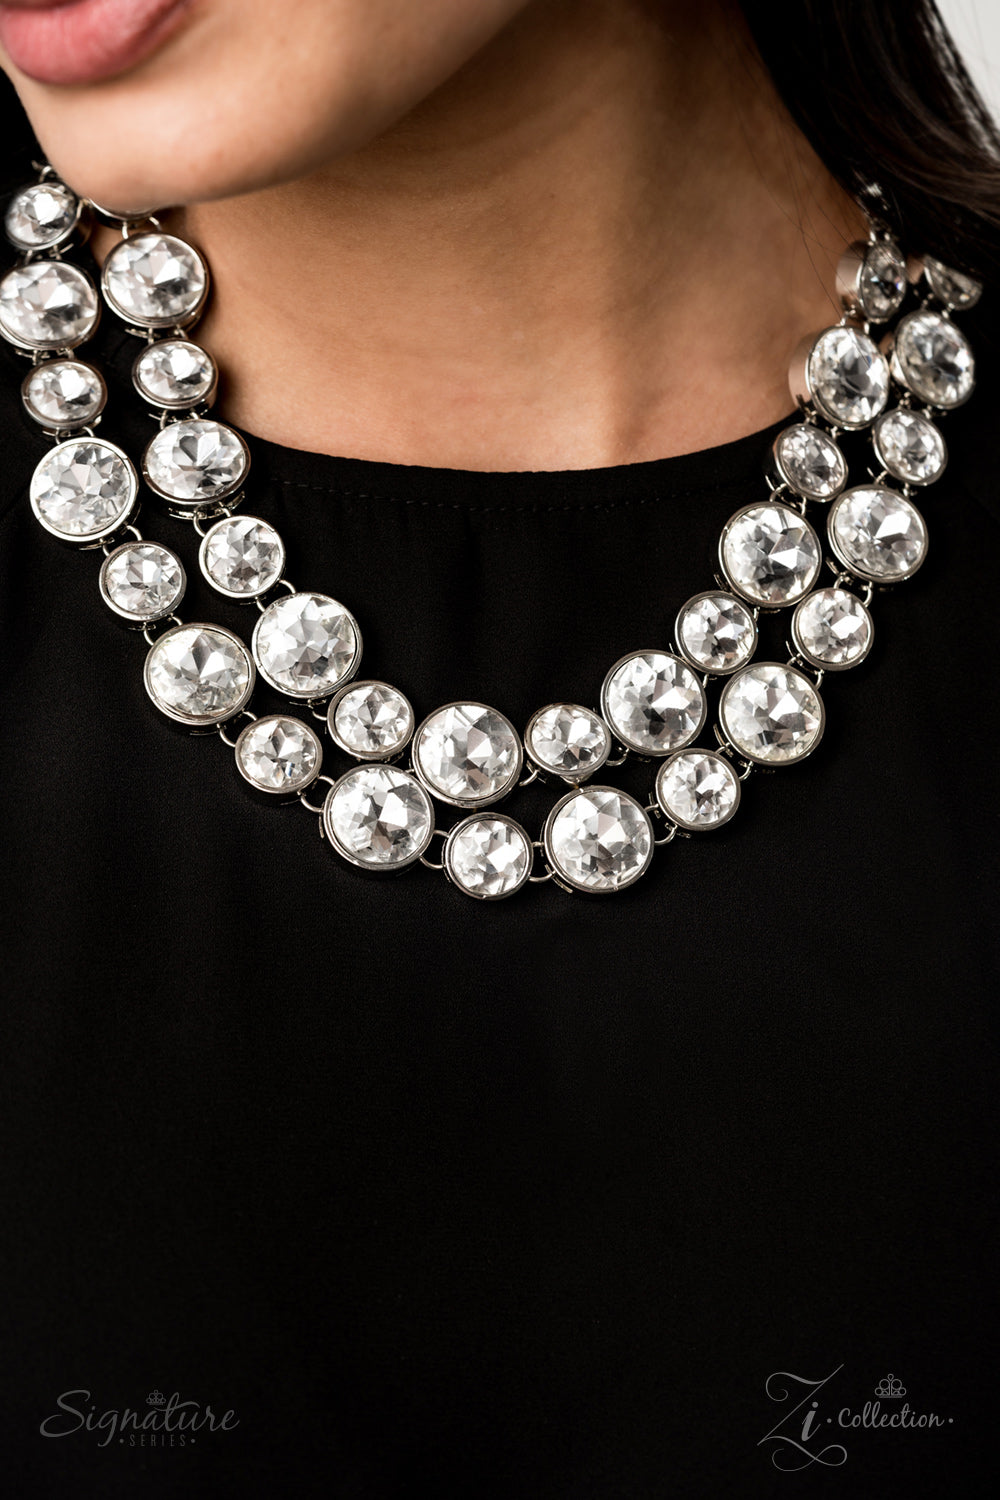 The Natasha - Paparazzi Zi Collection necklace